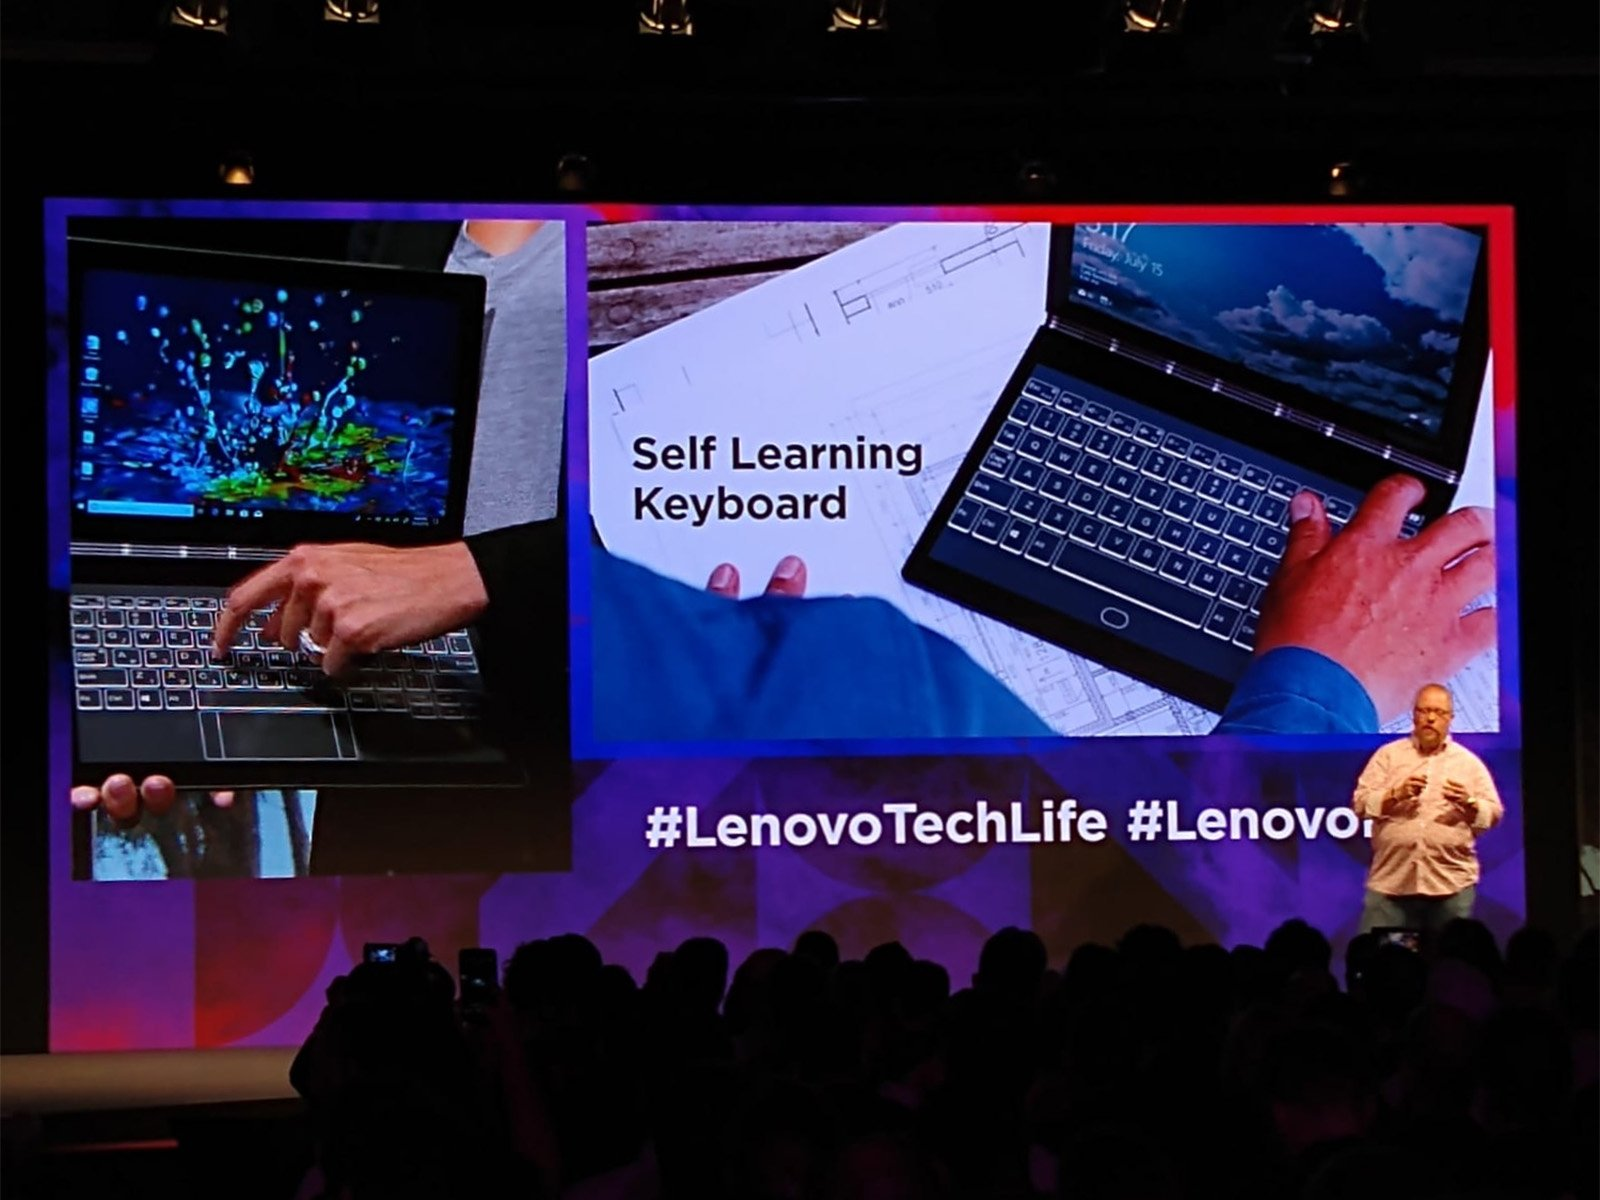 Lenovo Demo at Worldwide Expo #LenovoTechLife 2018